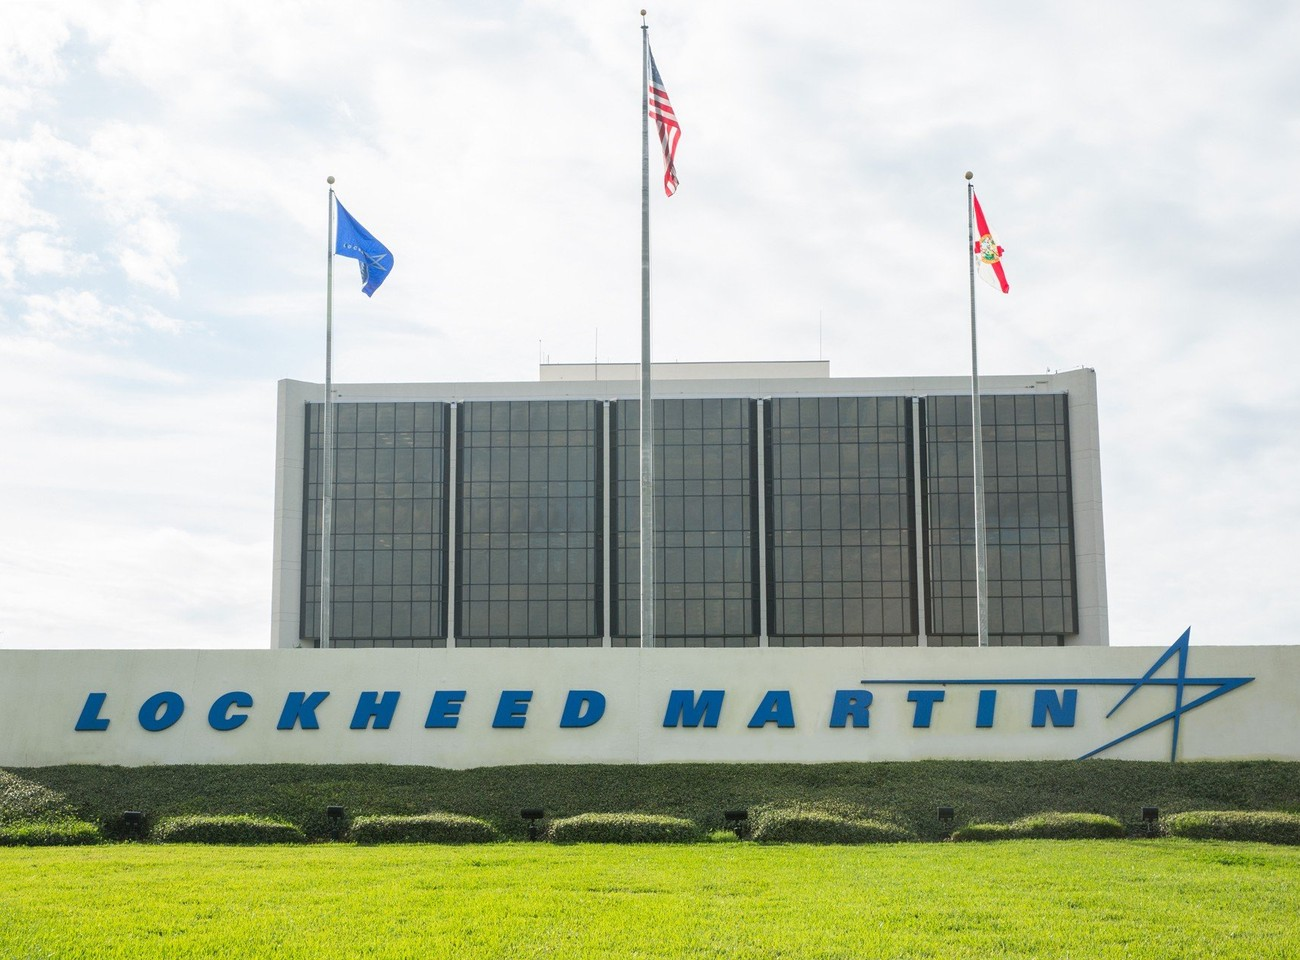 Lockheed Martin—Engineering & Operations Careers